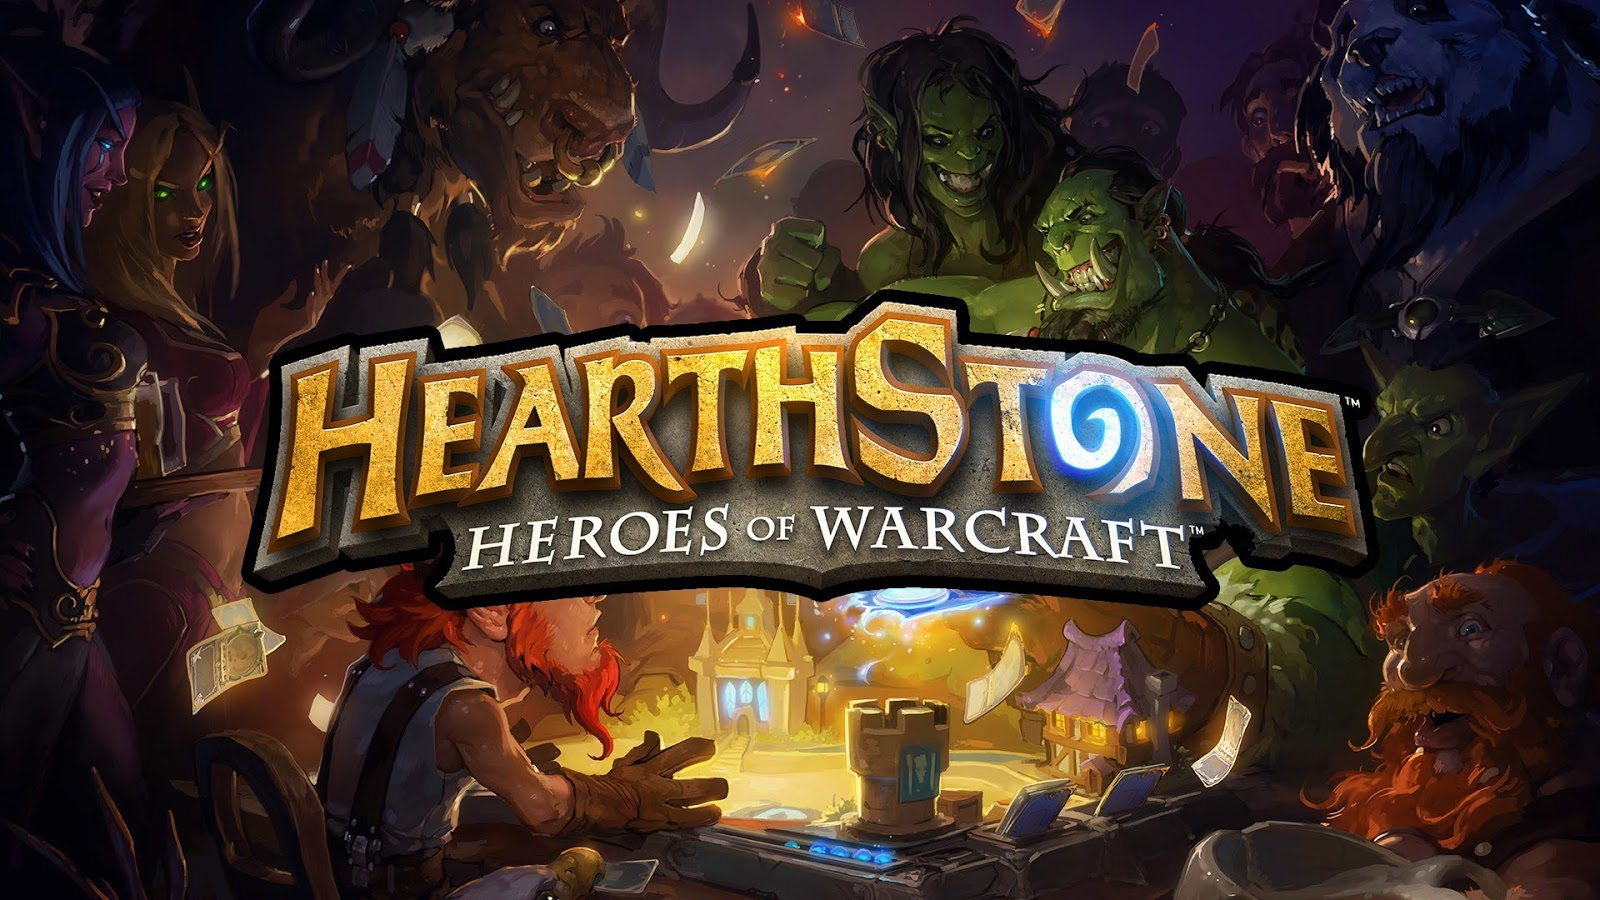 free download hearthstone heroes of warcraft game for pc desktop